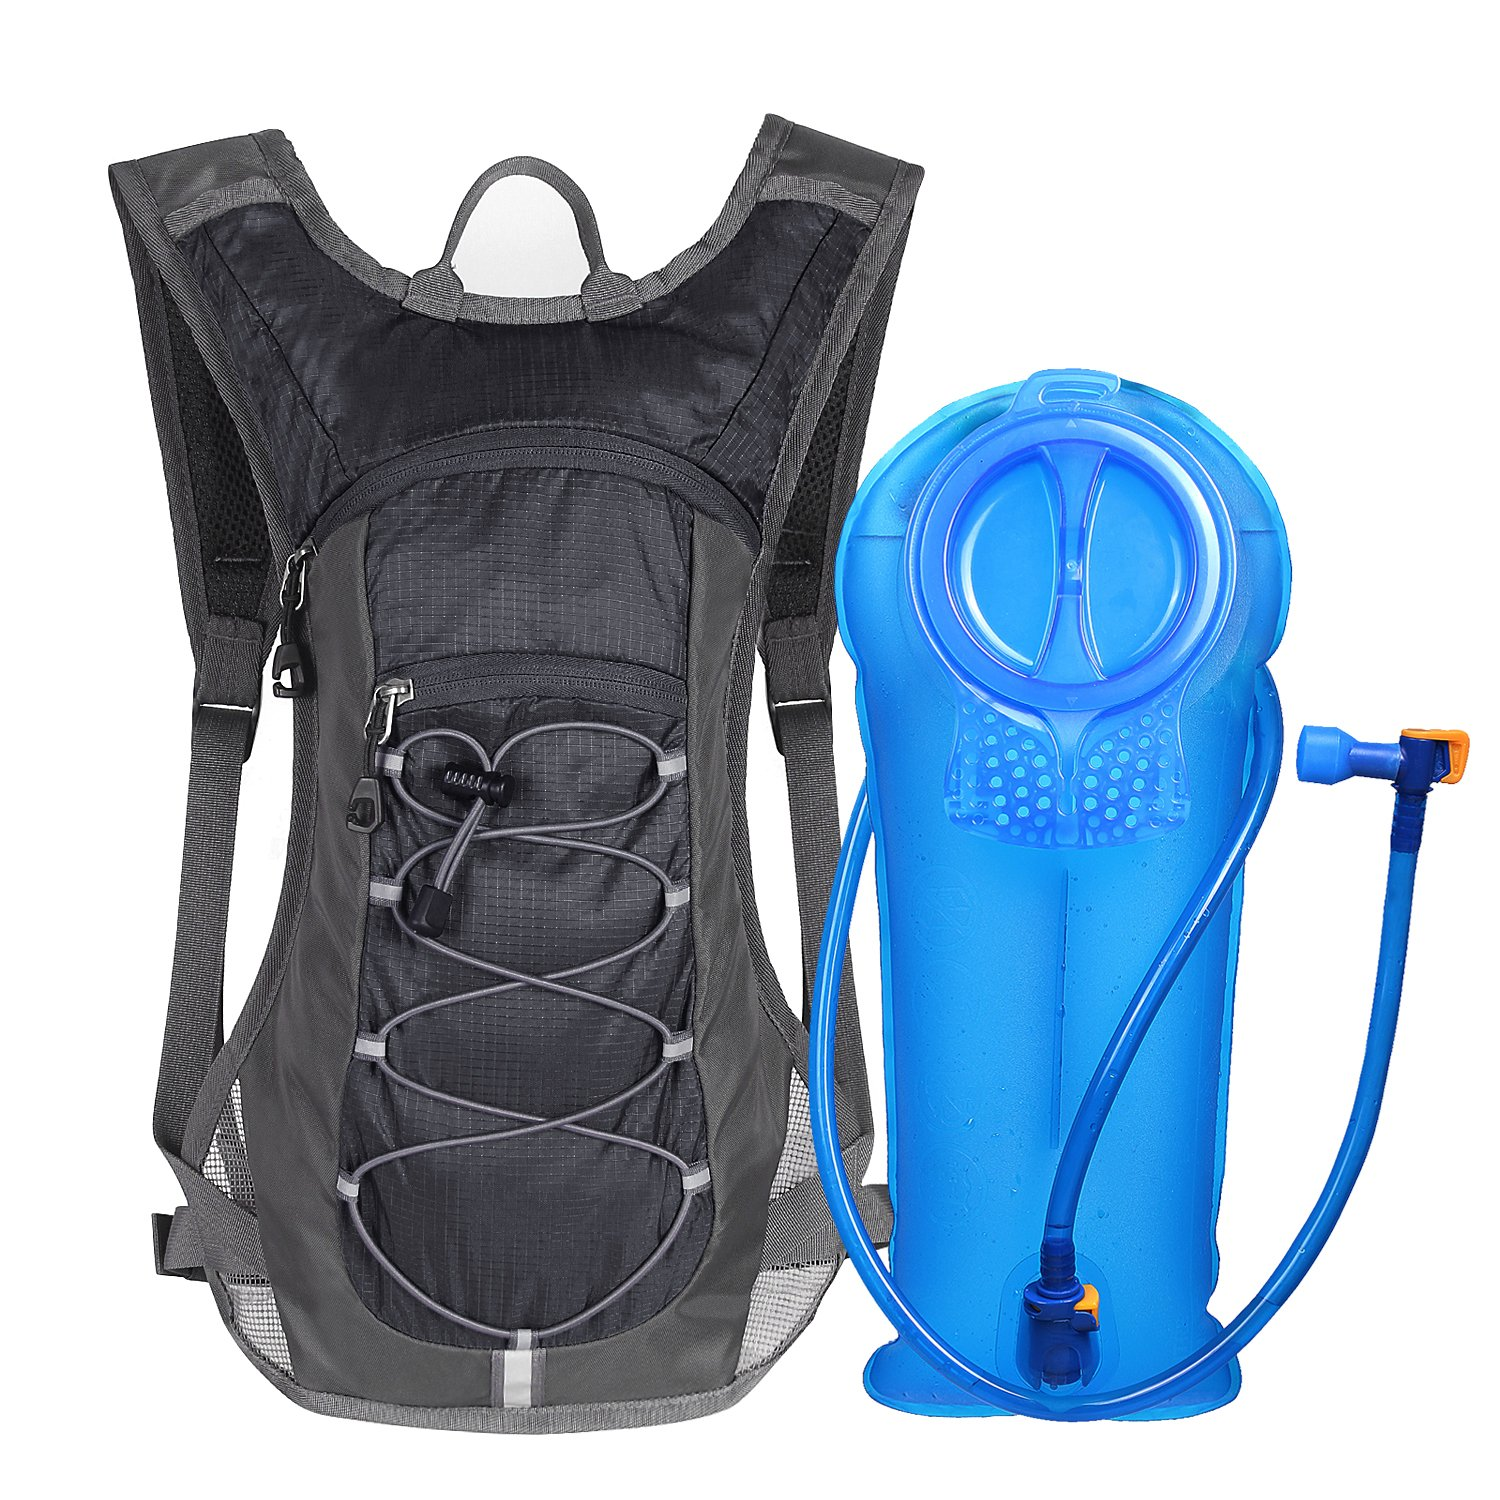 Click image to open expanded view Unigear Hydration Pack Backpack with 70 oz 2L Water Bladder for Running, Hiking, Cycling, Climbing, Camping, Biking